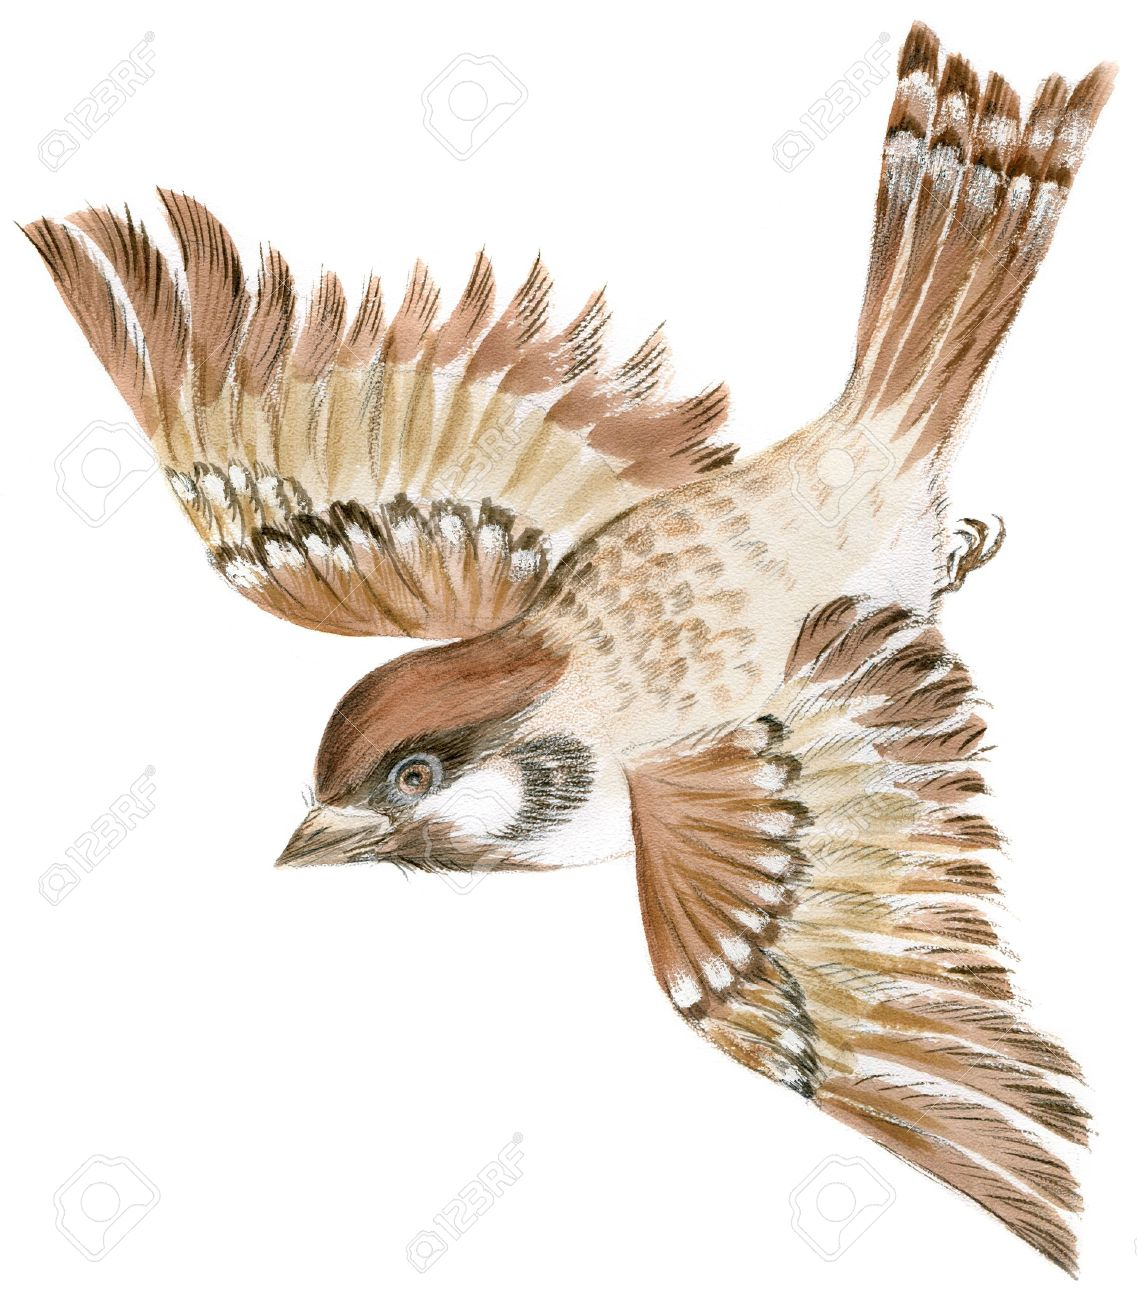 1137x1300 Painting Of A Sparrow Flying In Isolation Stock Photo, Picture